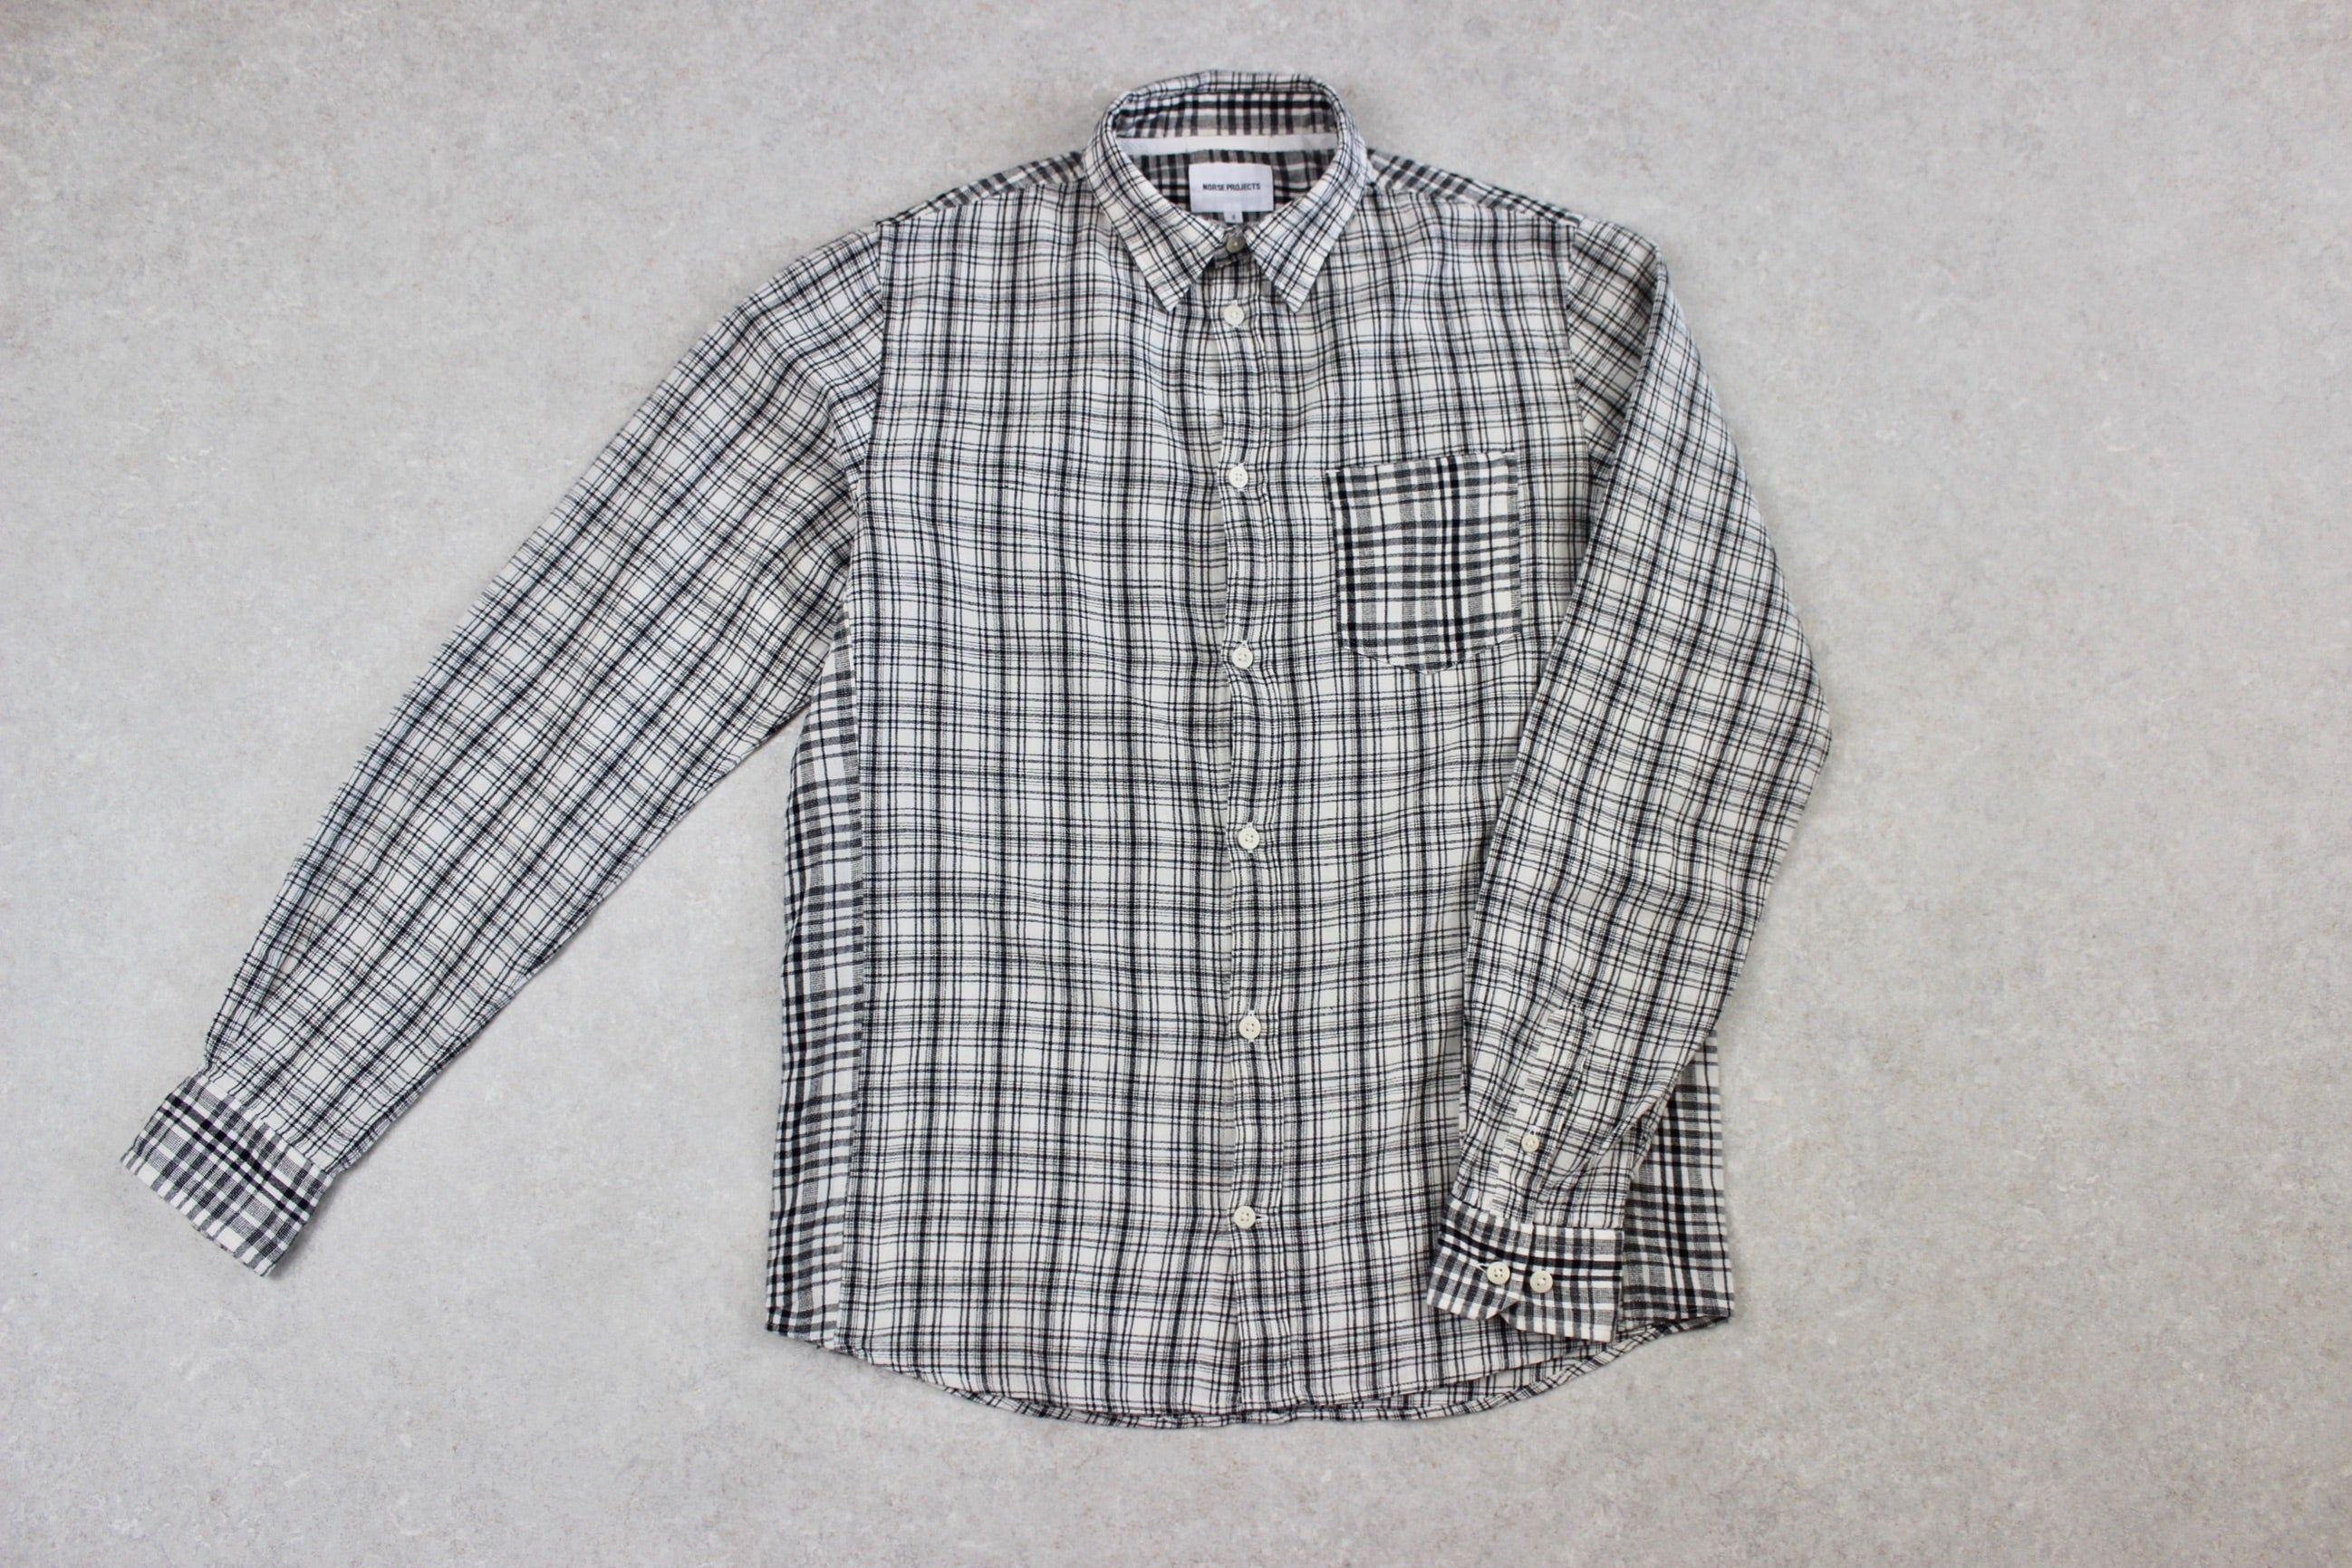 Norse Projects - Cotton/Linen Shirt - White/Black Check - Small